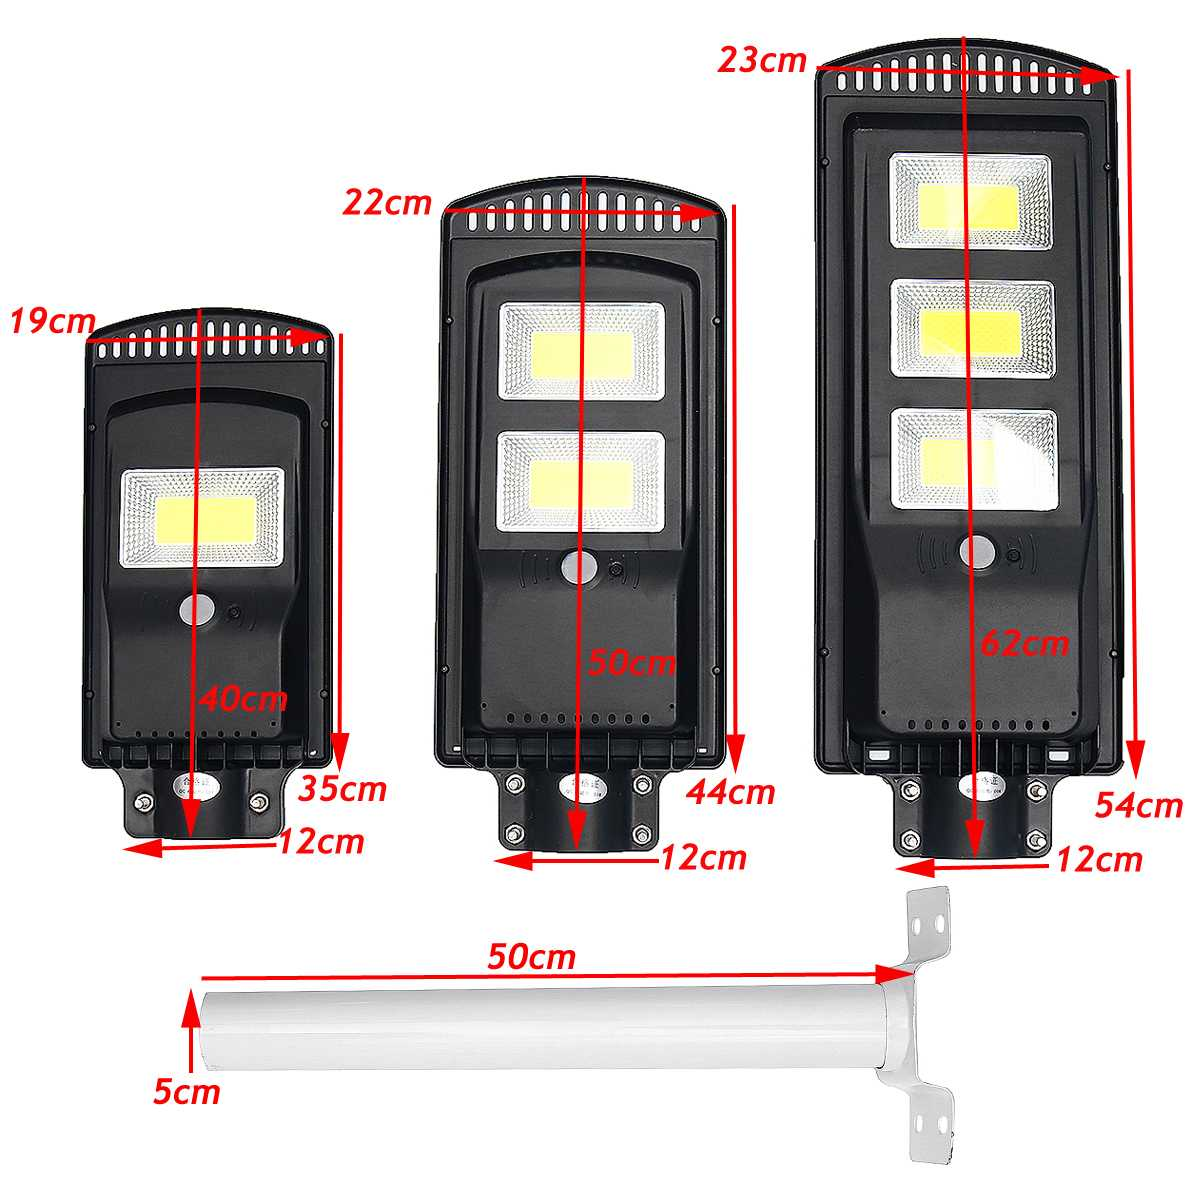 120/240/360 COB Wall Lamp IP67 Waterproof Outdoor Solar Street Light With Remote Control For Garden Yard Street Flood Lamp